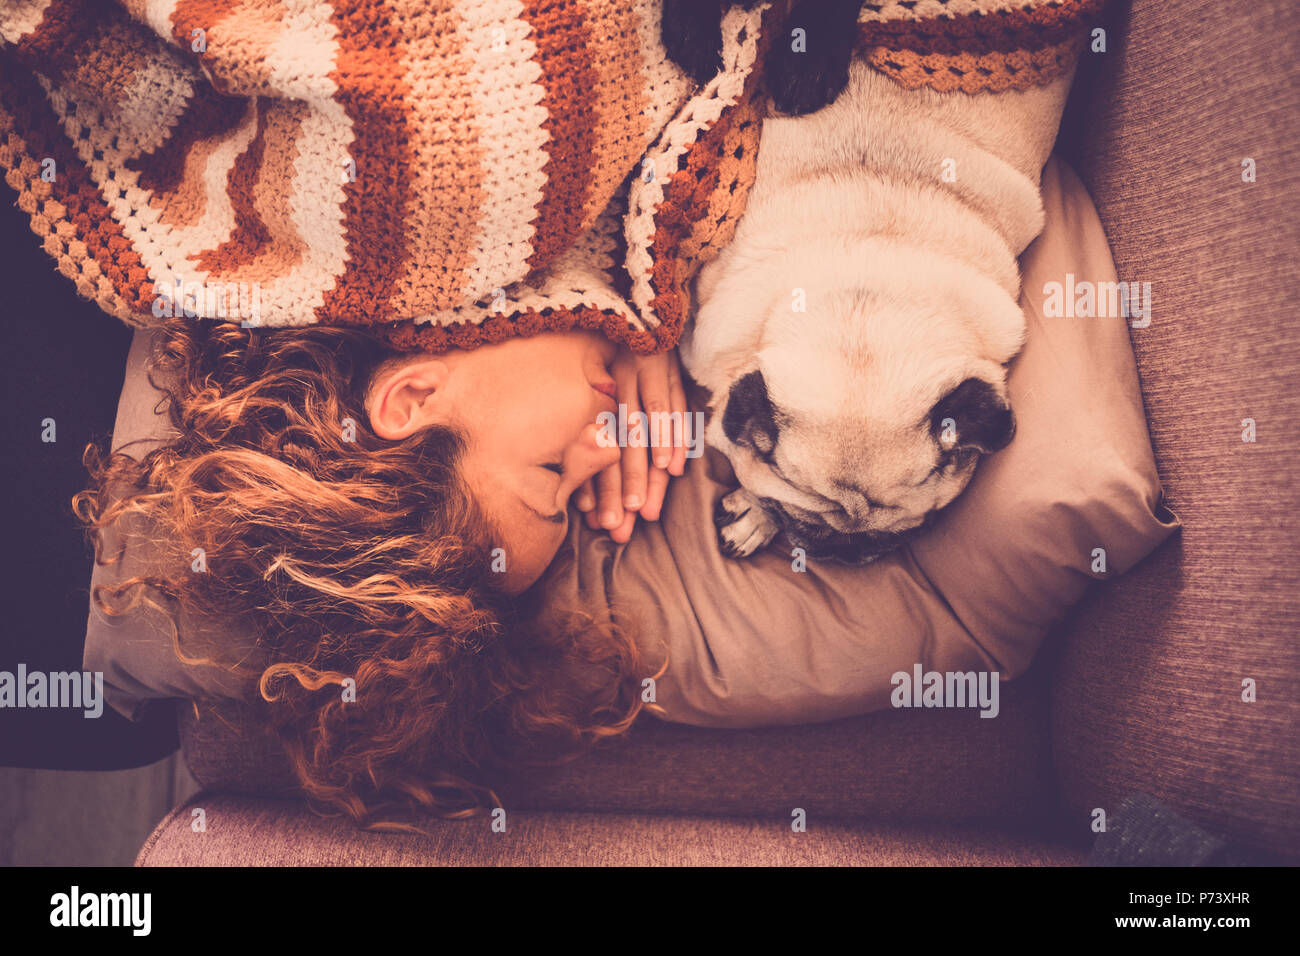 lovely couple woman pug dog sleep together at home in a tender and sweet romantic scene. staying closer with love and friendship. true relationship be - Stock Image